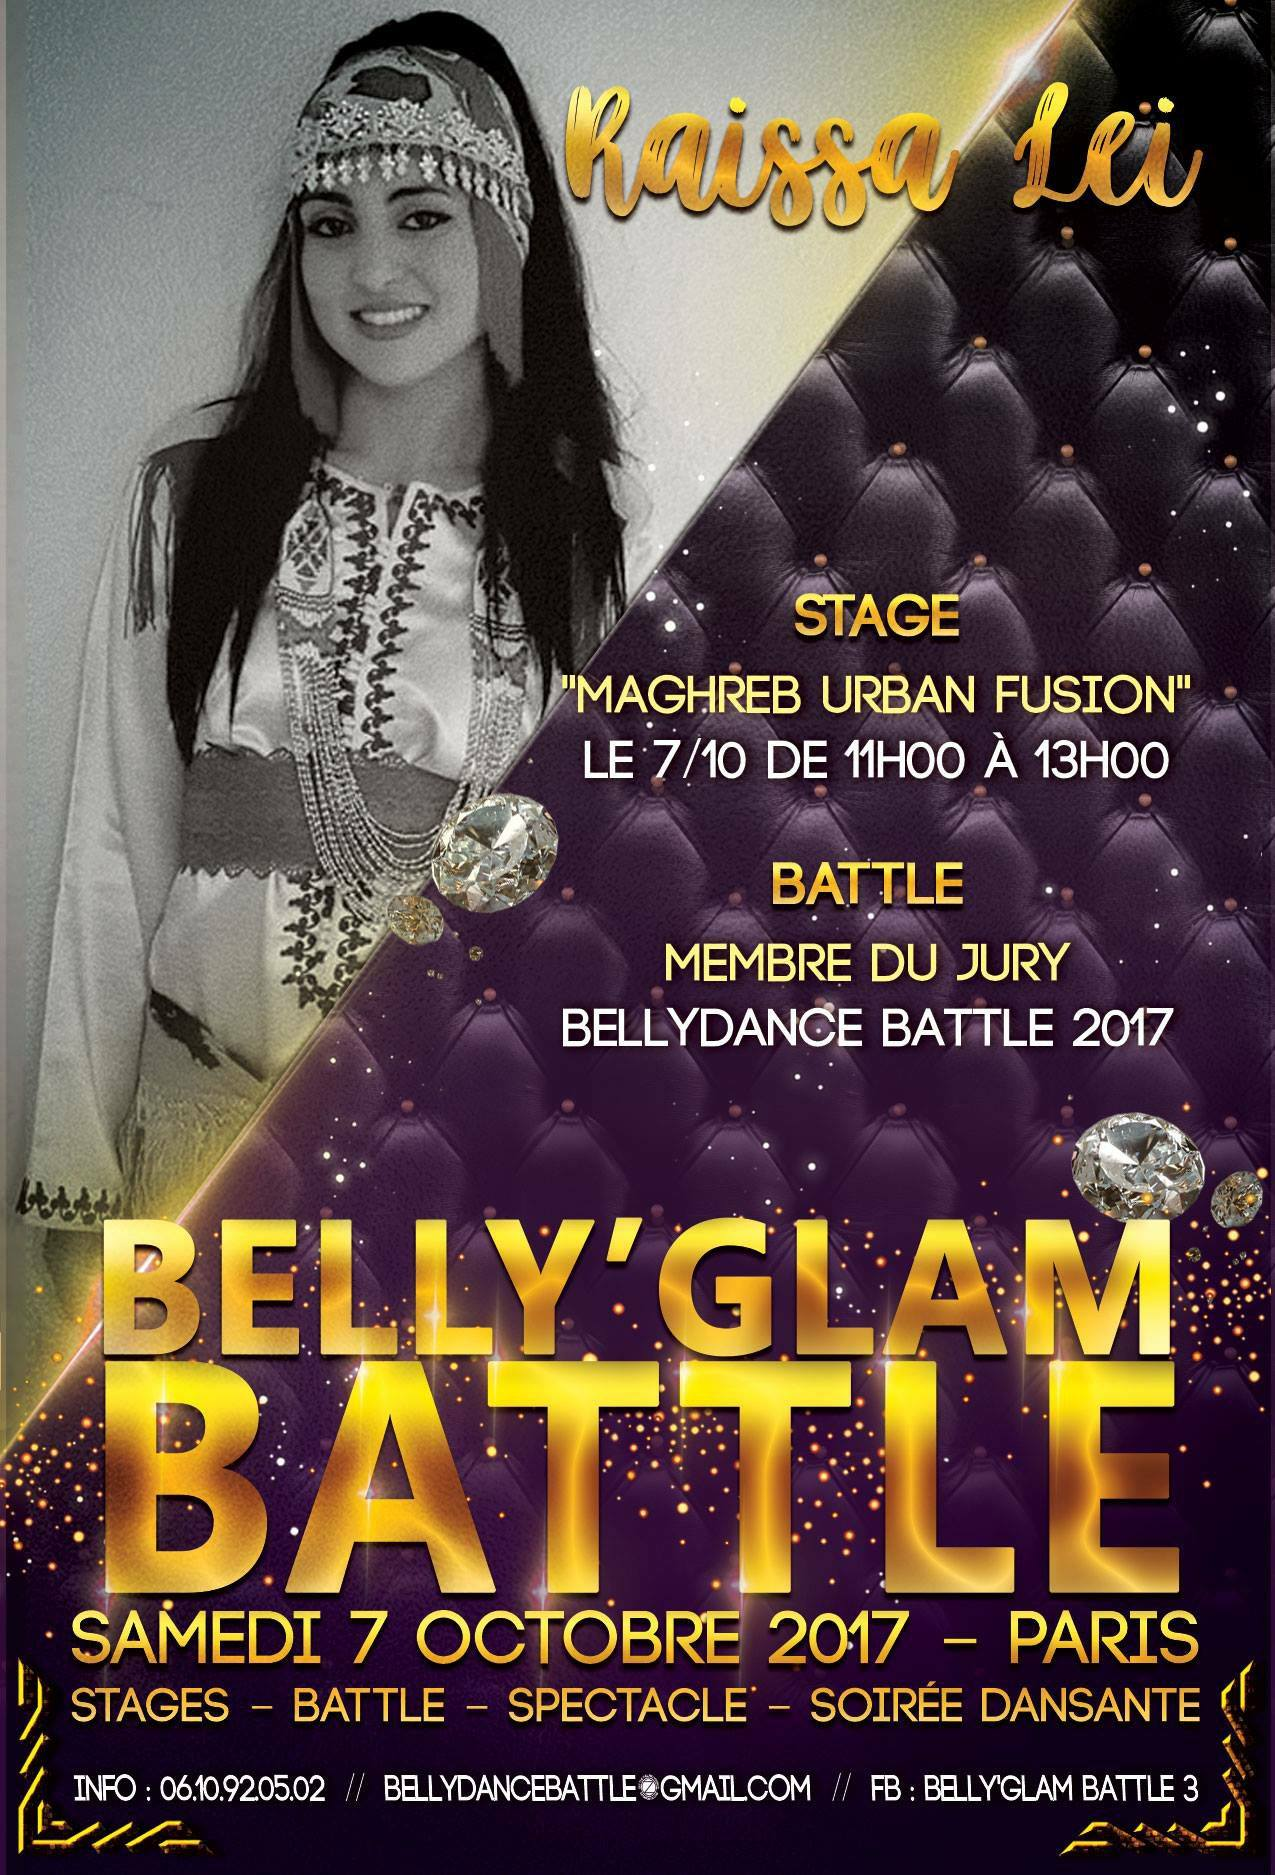 Belly'glam Battle